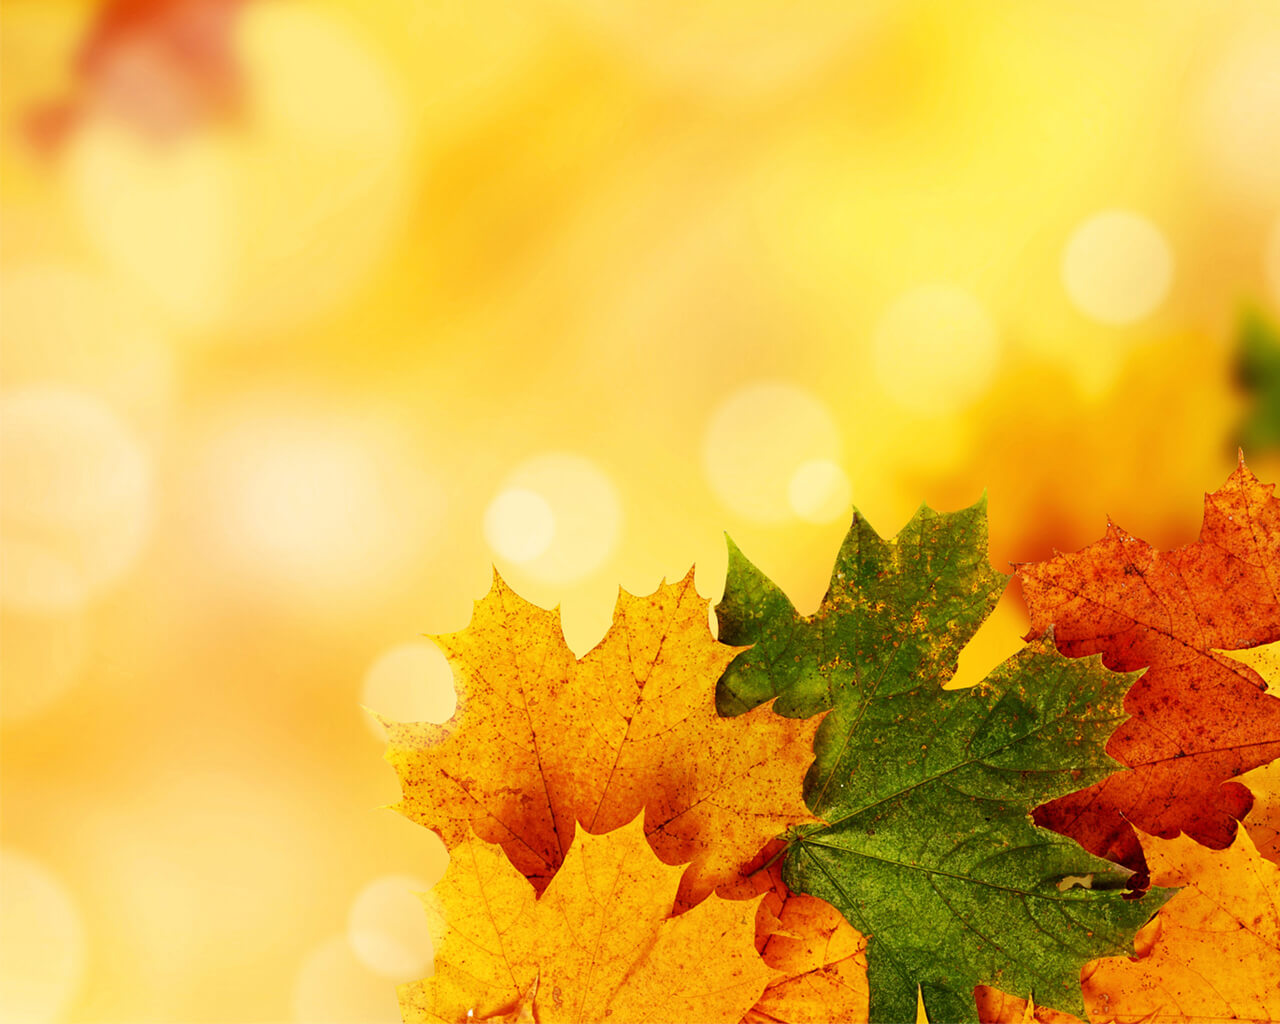 Yellow Autumn Backgrounds For Powerpoint - Nature Ppt Templates Intended For Free Fall Powerpoint Templates